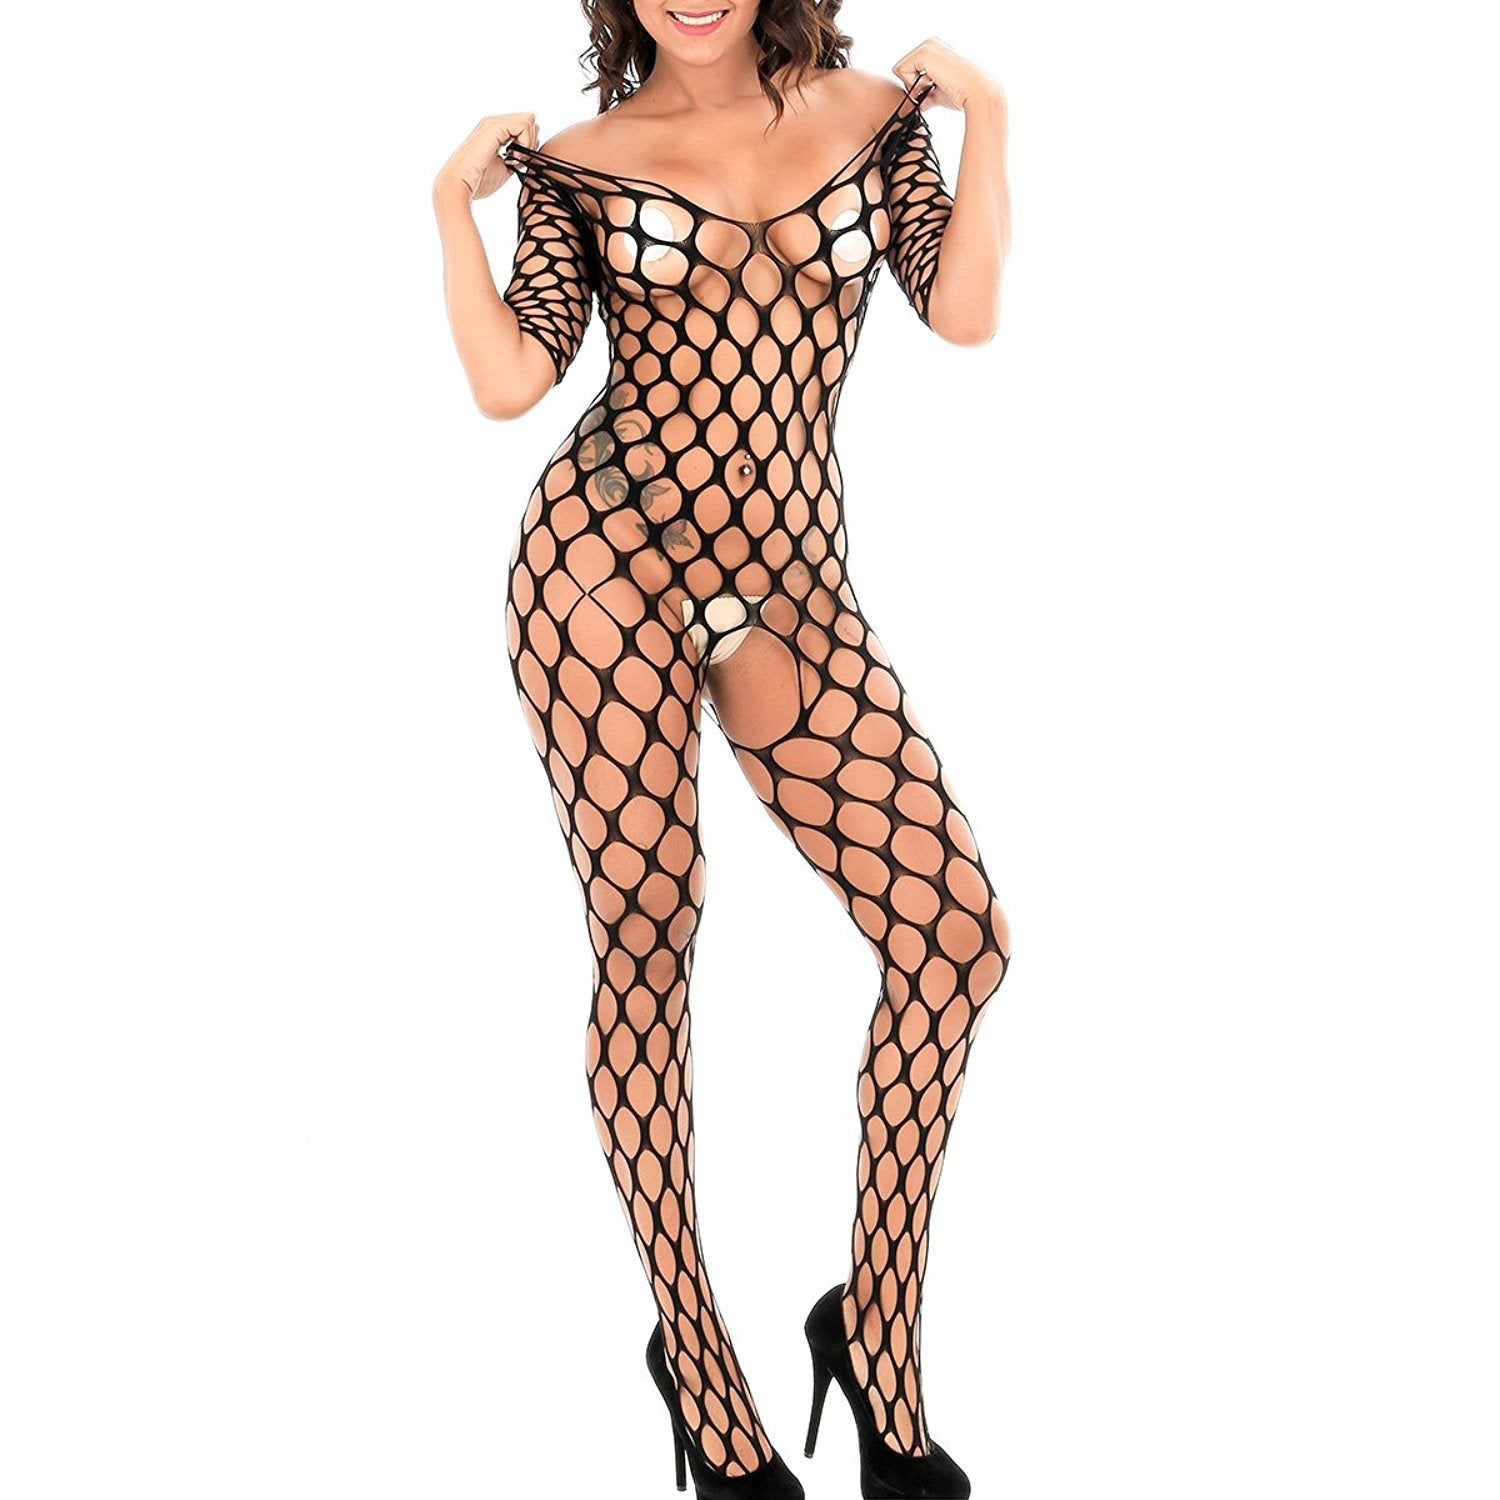 2ccc00770e9 Beauty Bodystocking Crotchless Women Sexy Lingerie Fishnet Bodysuit Teddy  Hollow Out Stretch Babydoll